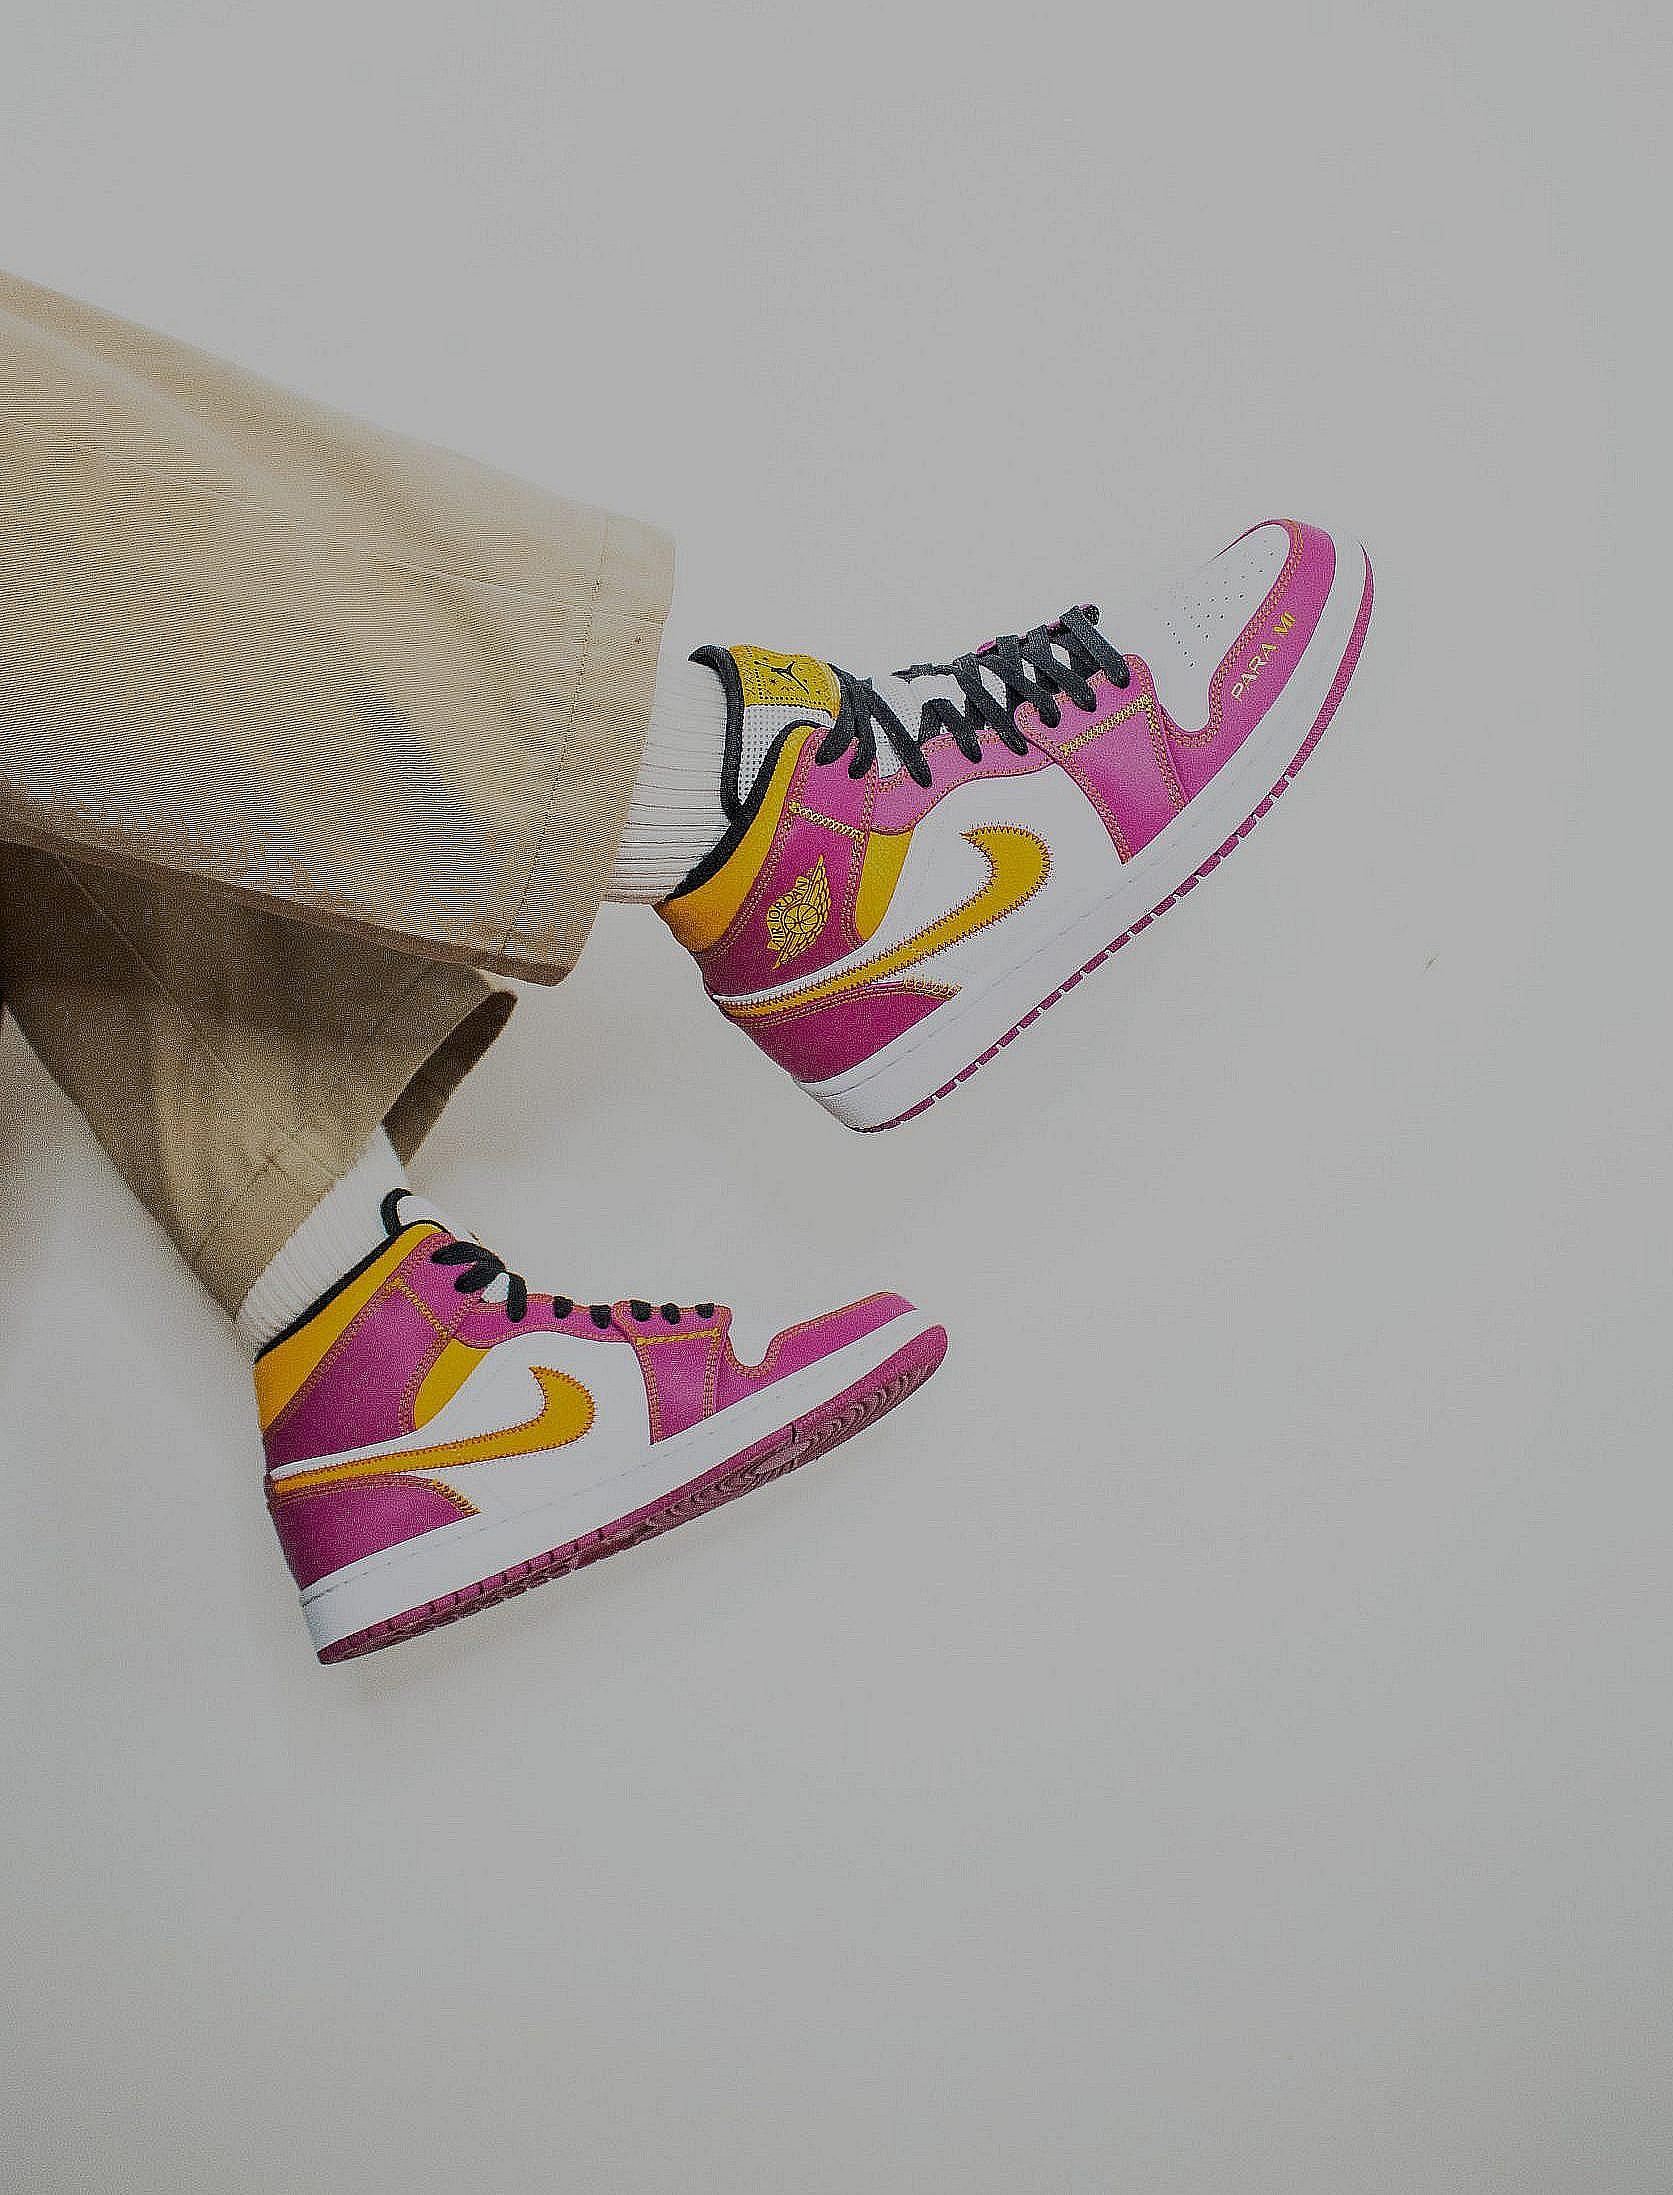 GOING SOLE TO SOLE: SNEAKER CUSTOMISERS IN LONDON